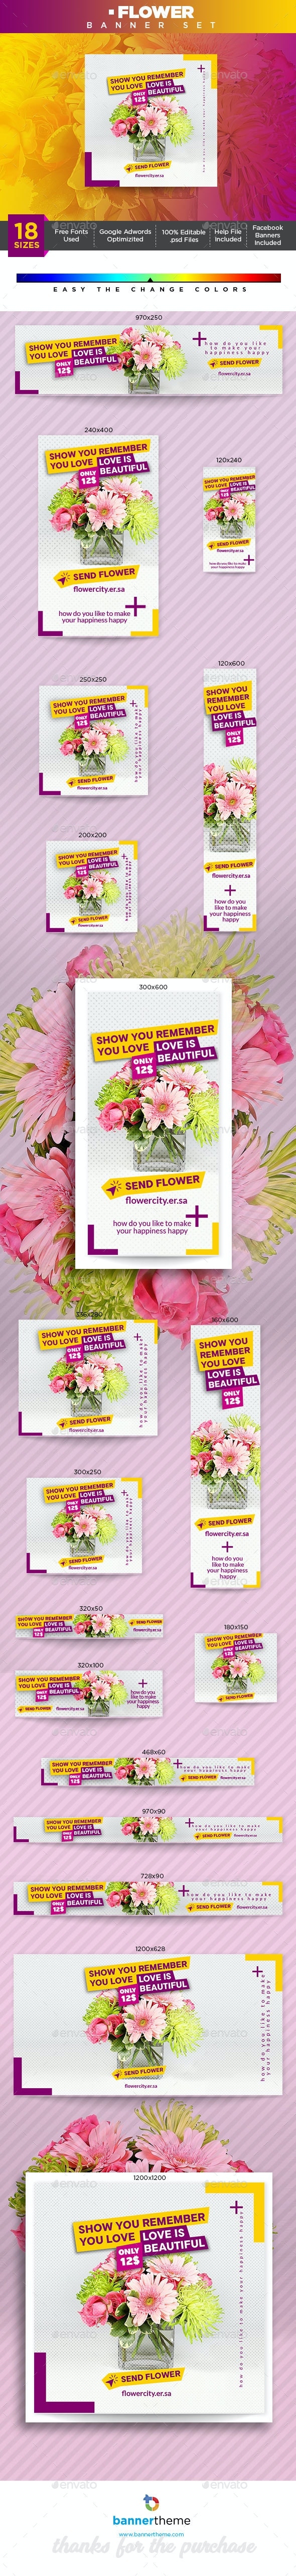 Flower Banner - Banners & Ads Web Elements